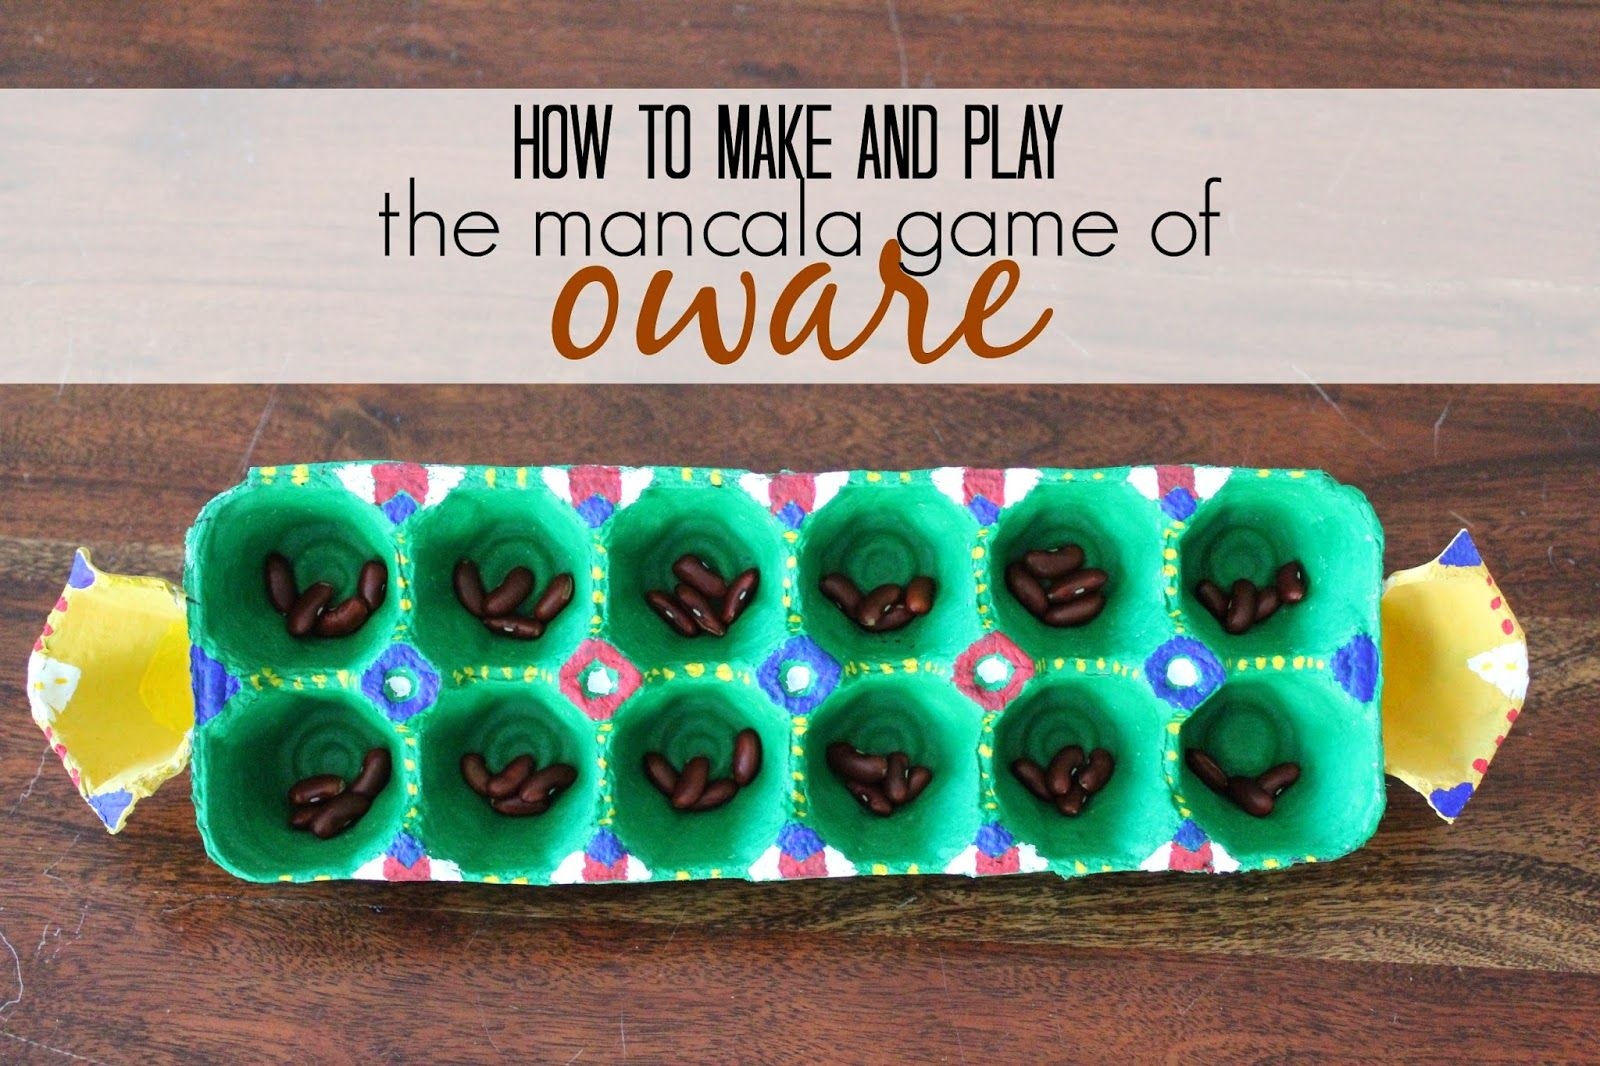 West African Game How To Make And Play The Mancala Game Oware African Crafts African International Craft